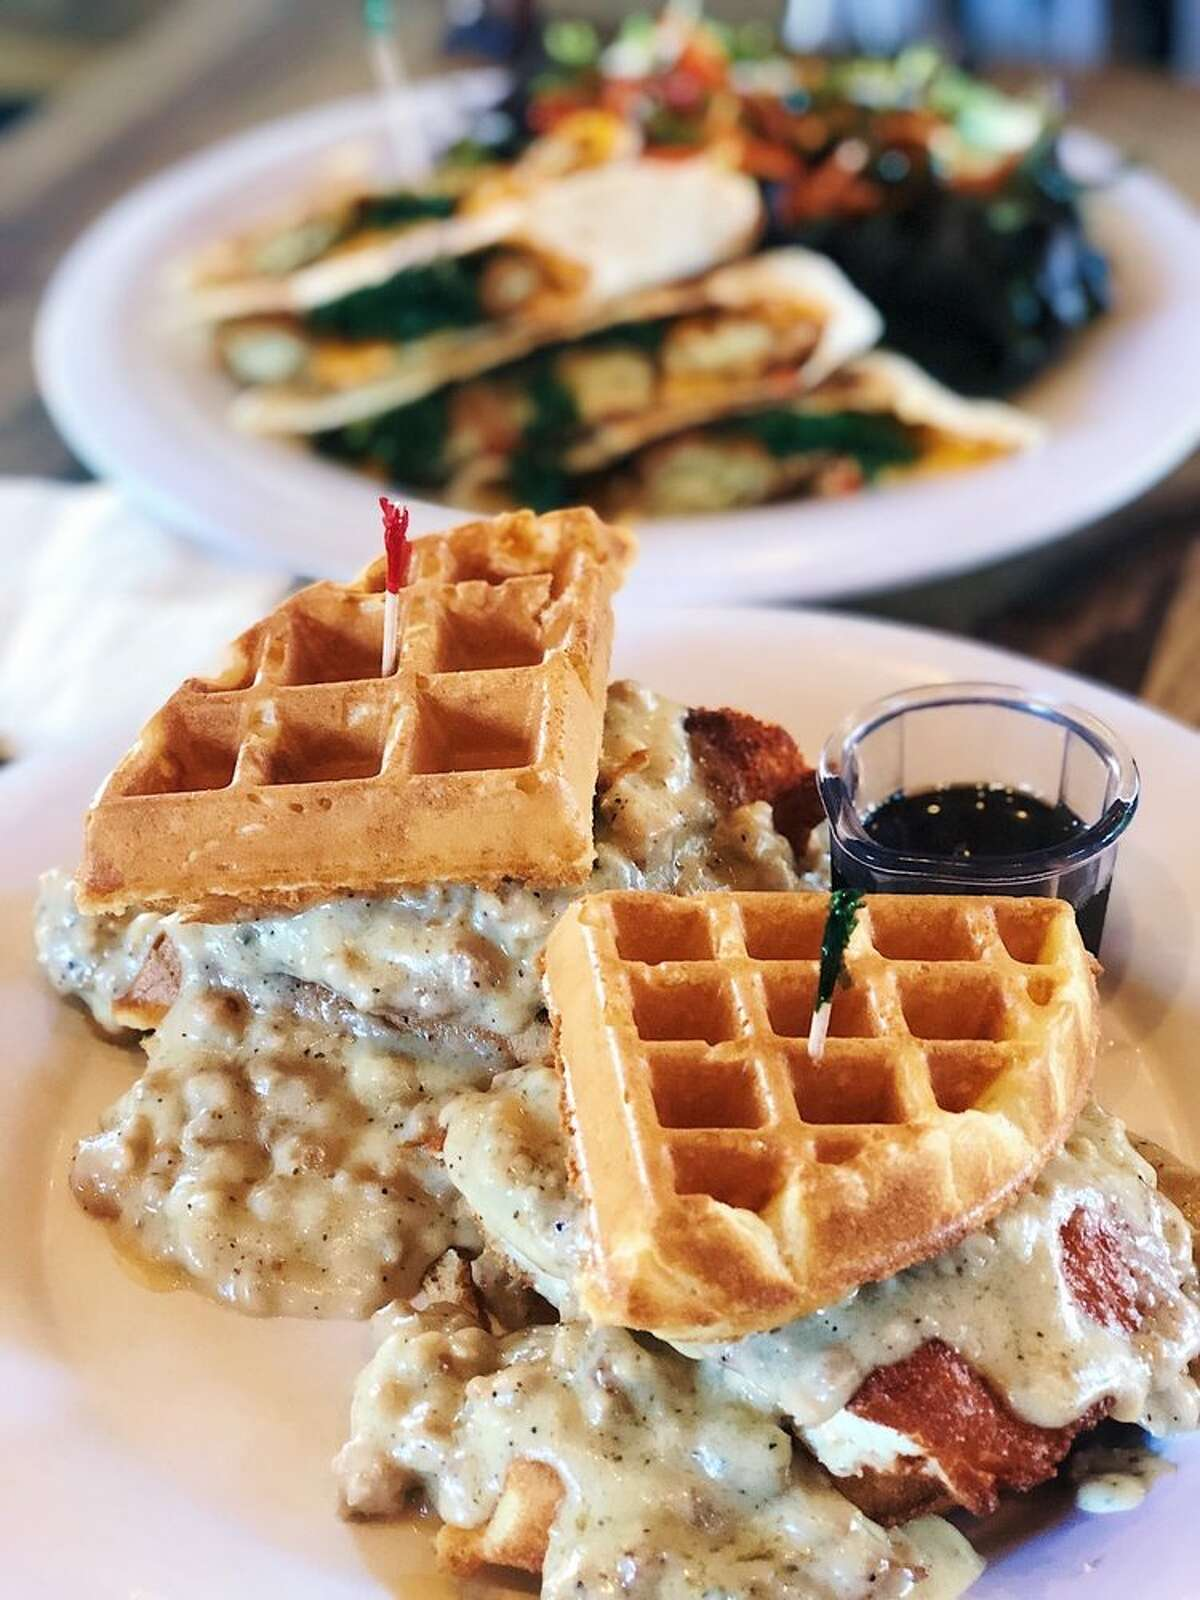 Stone Way Cafe: breakfast and brunch